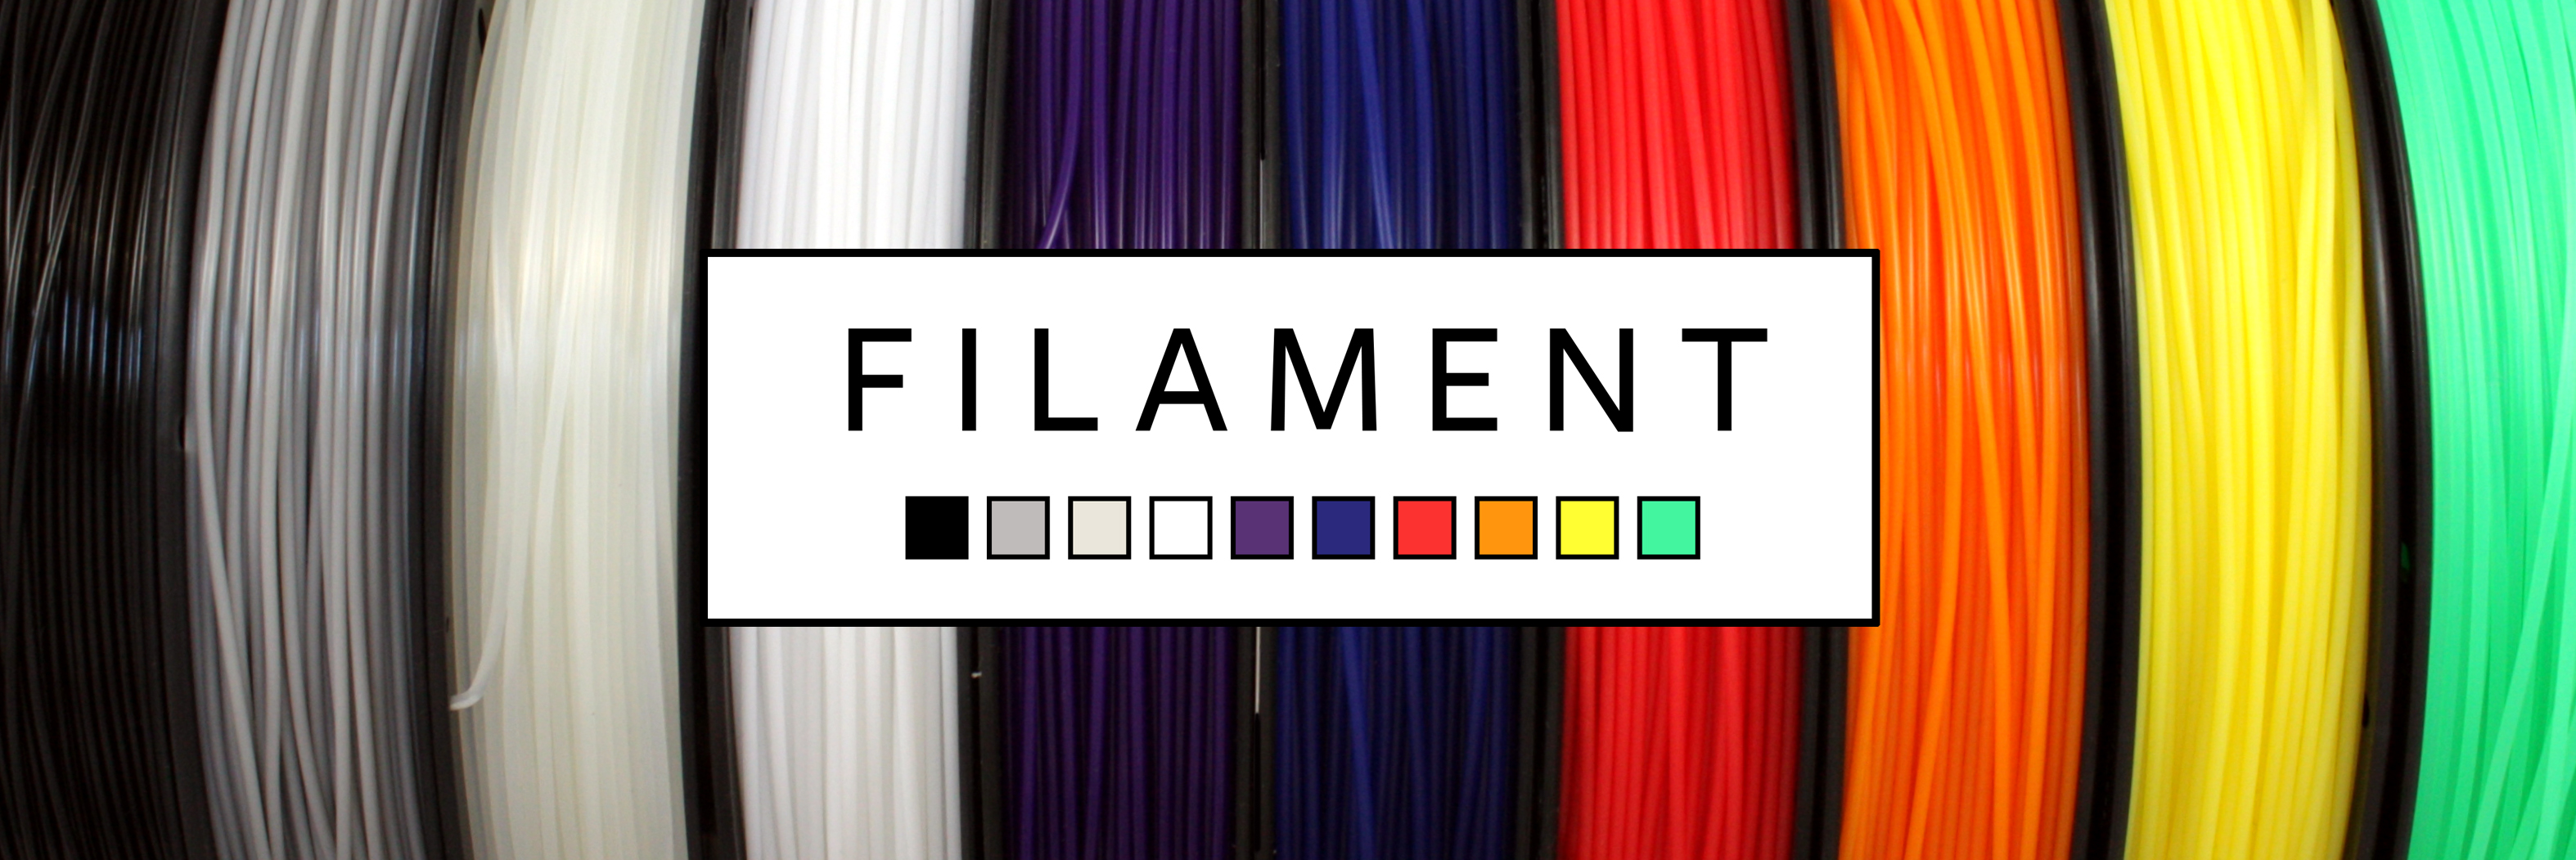 Panospace Filaments